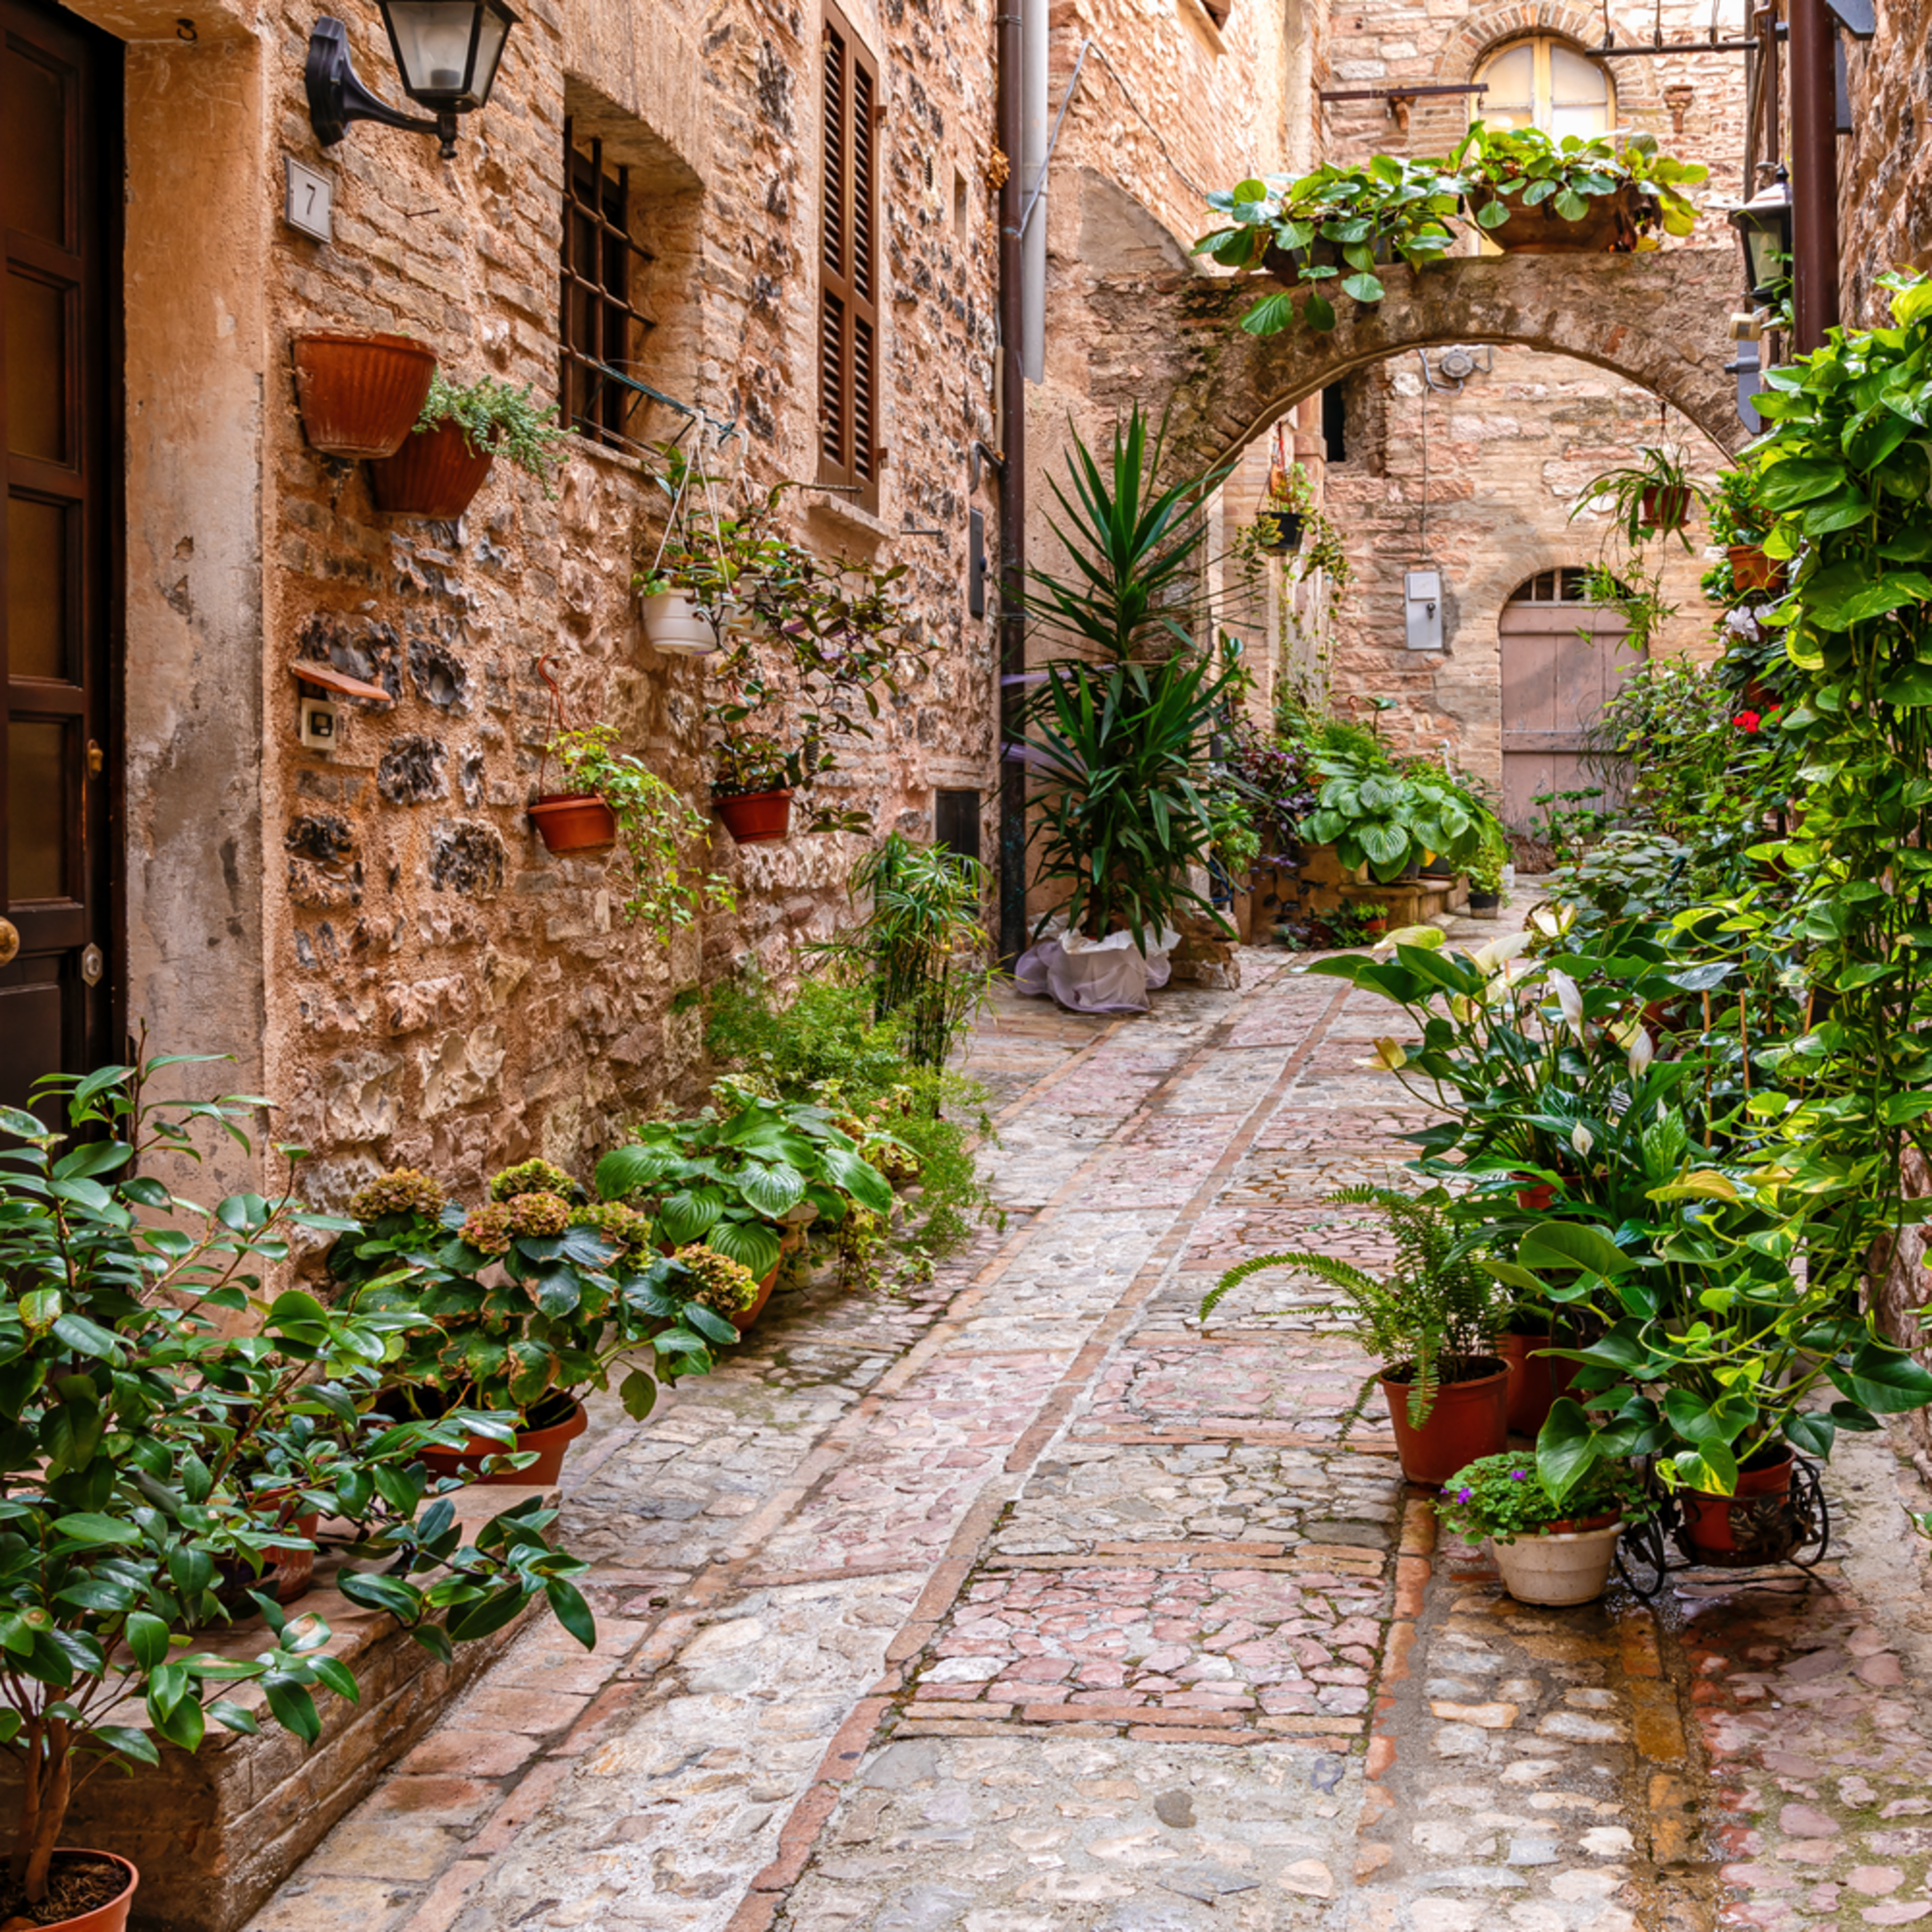 Spello and flowers in alleyway italy ngi5pr